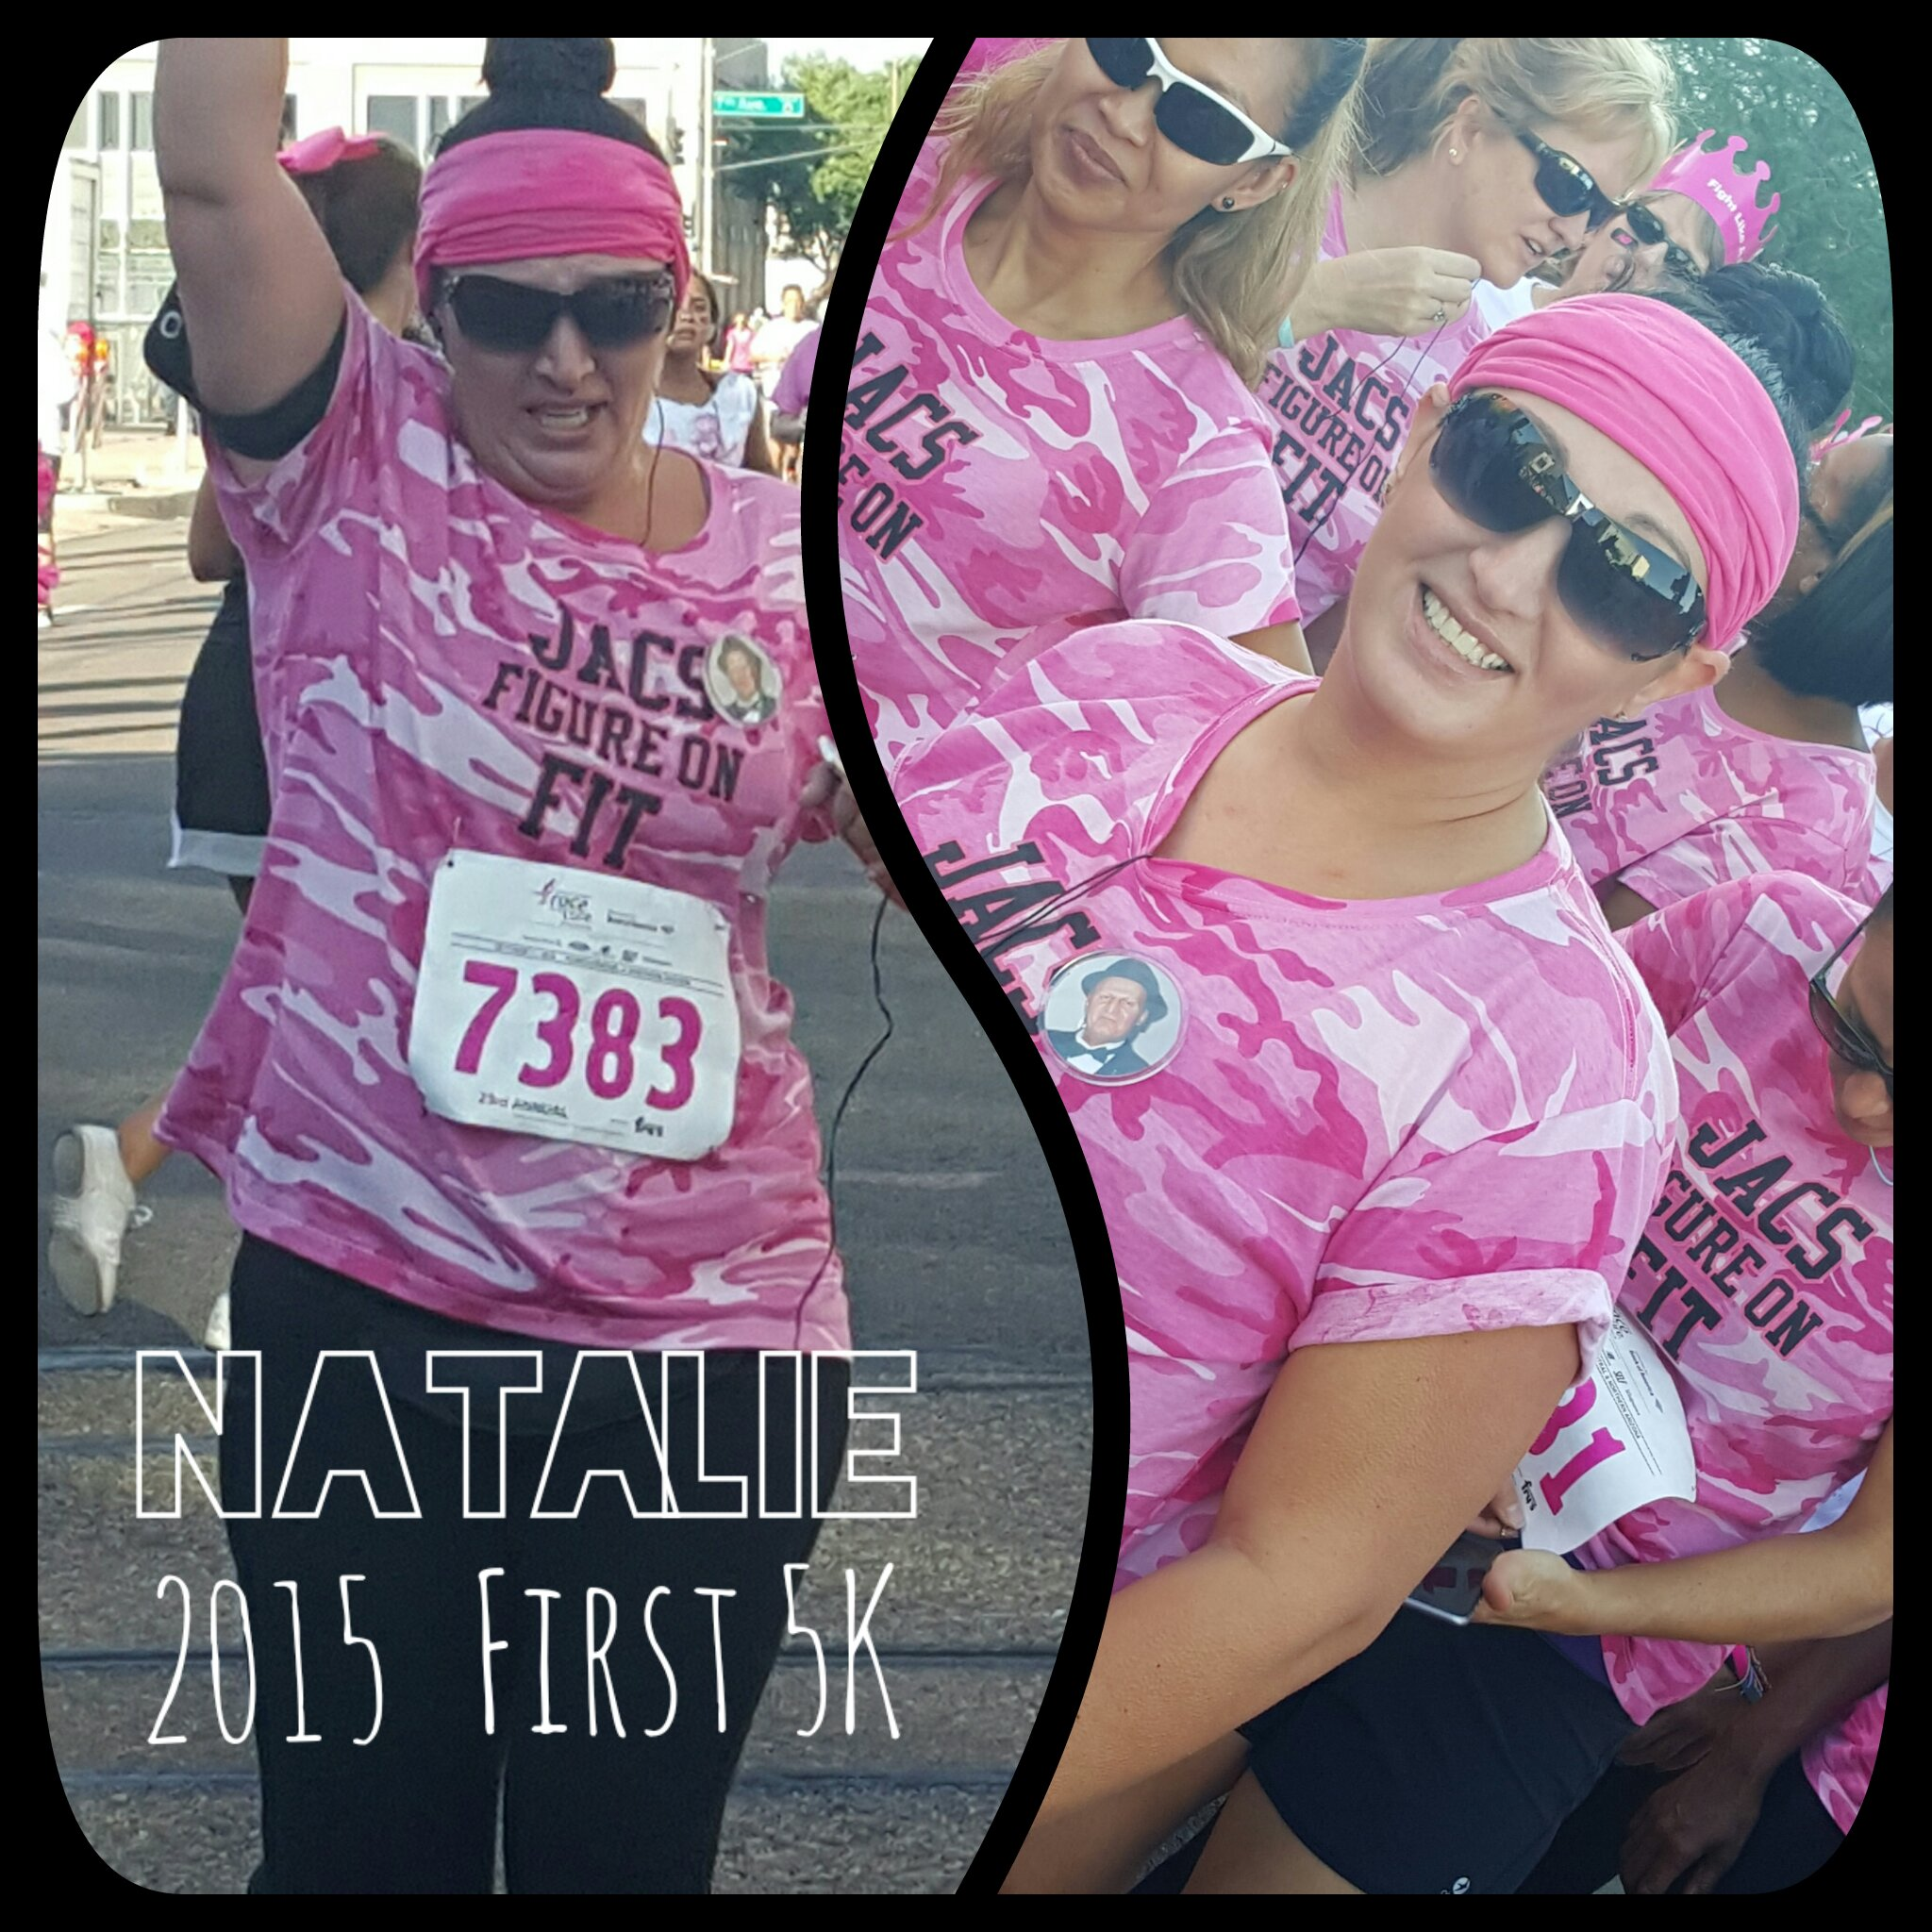 Natalie McGrory: Susan G. Komen Race for the Cure 2015